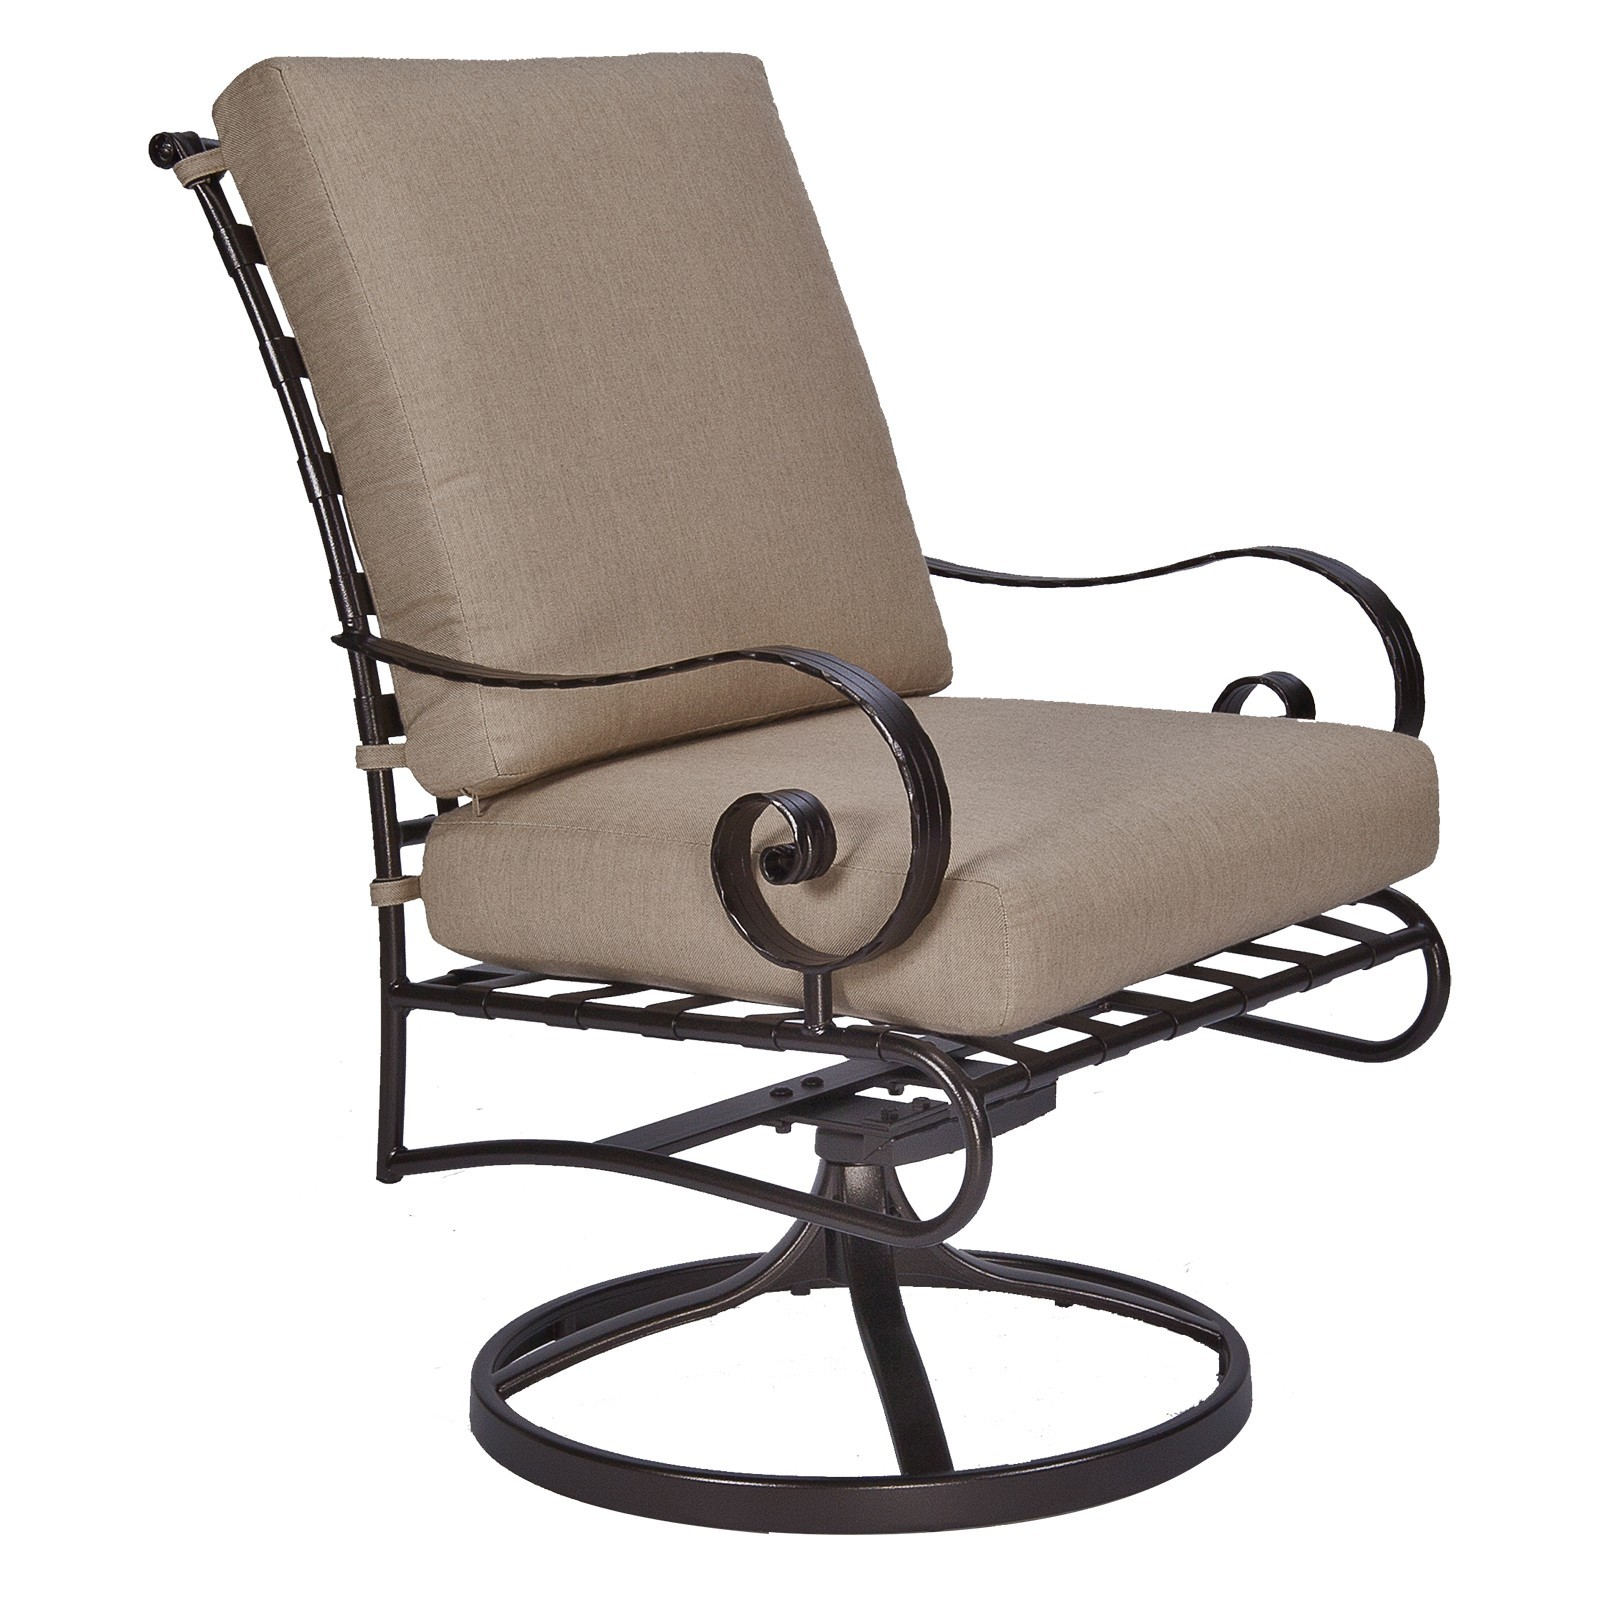 Spring Chair Classico W Club Dining Spring Base Rocker Arm Chair